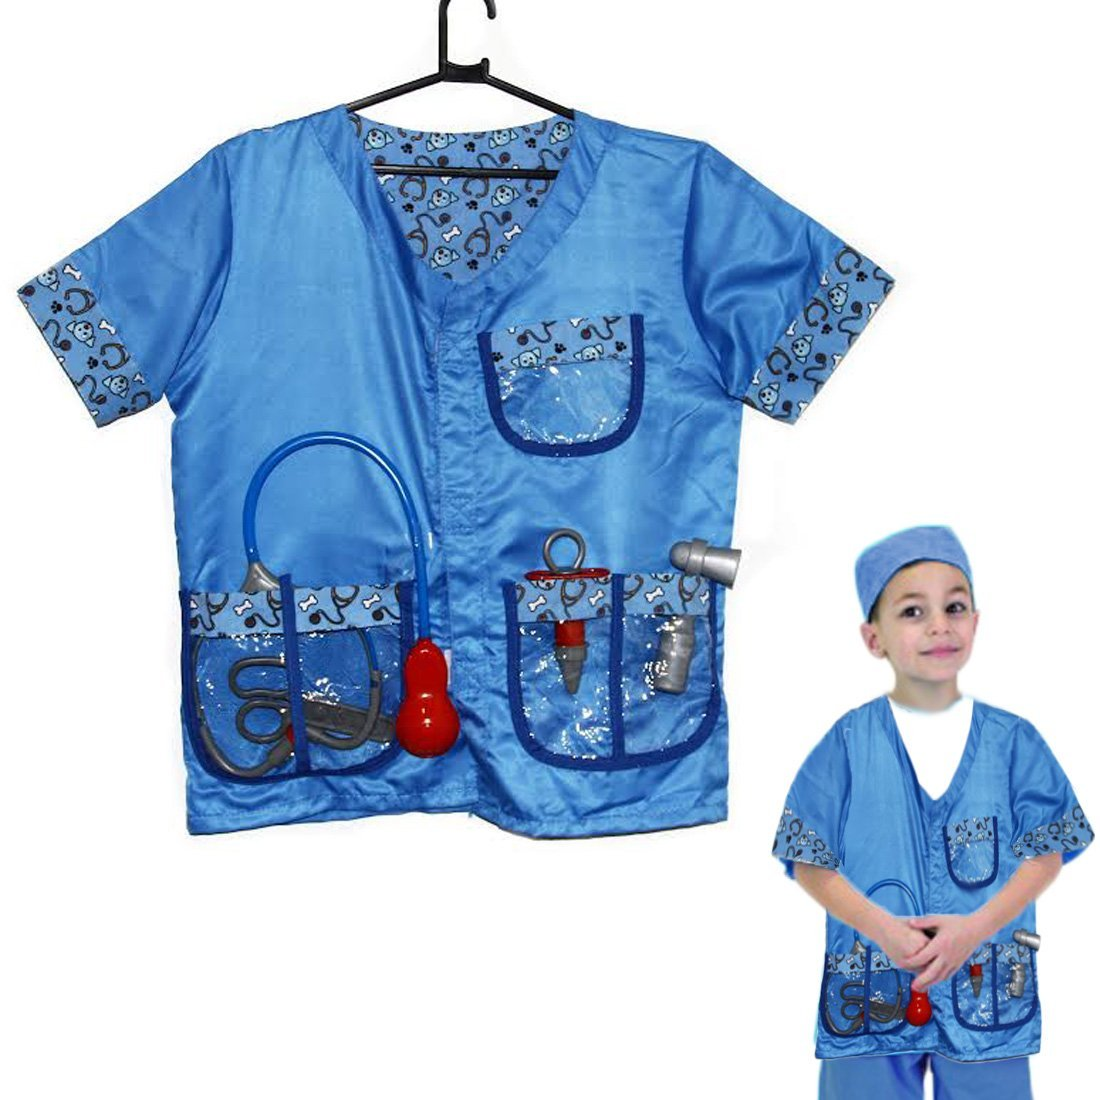 Dazzling Toys Christmas Costume Set Kids Pretend Play Veterinarian Costume Set with Accessories